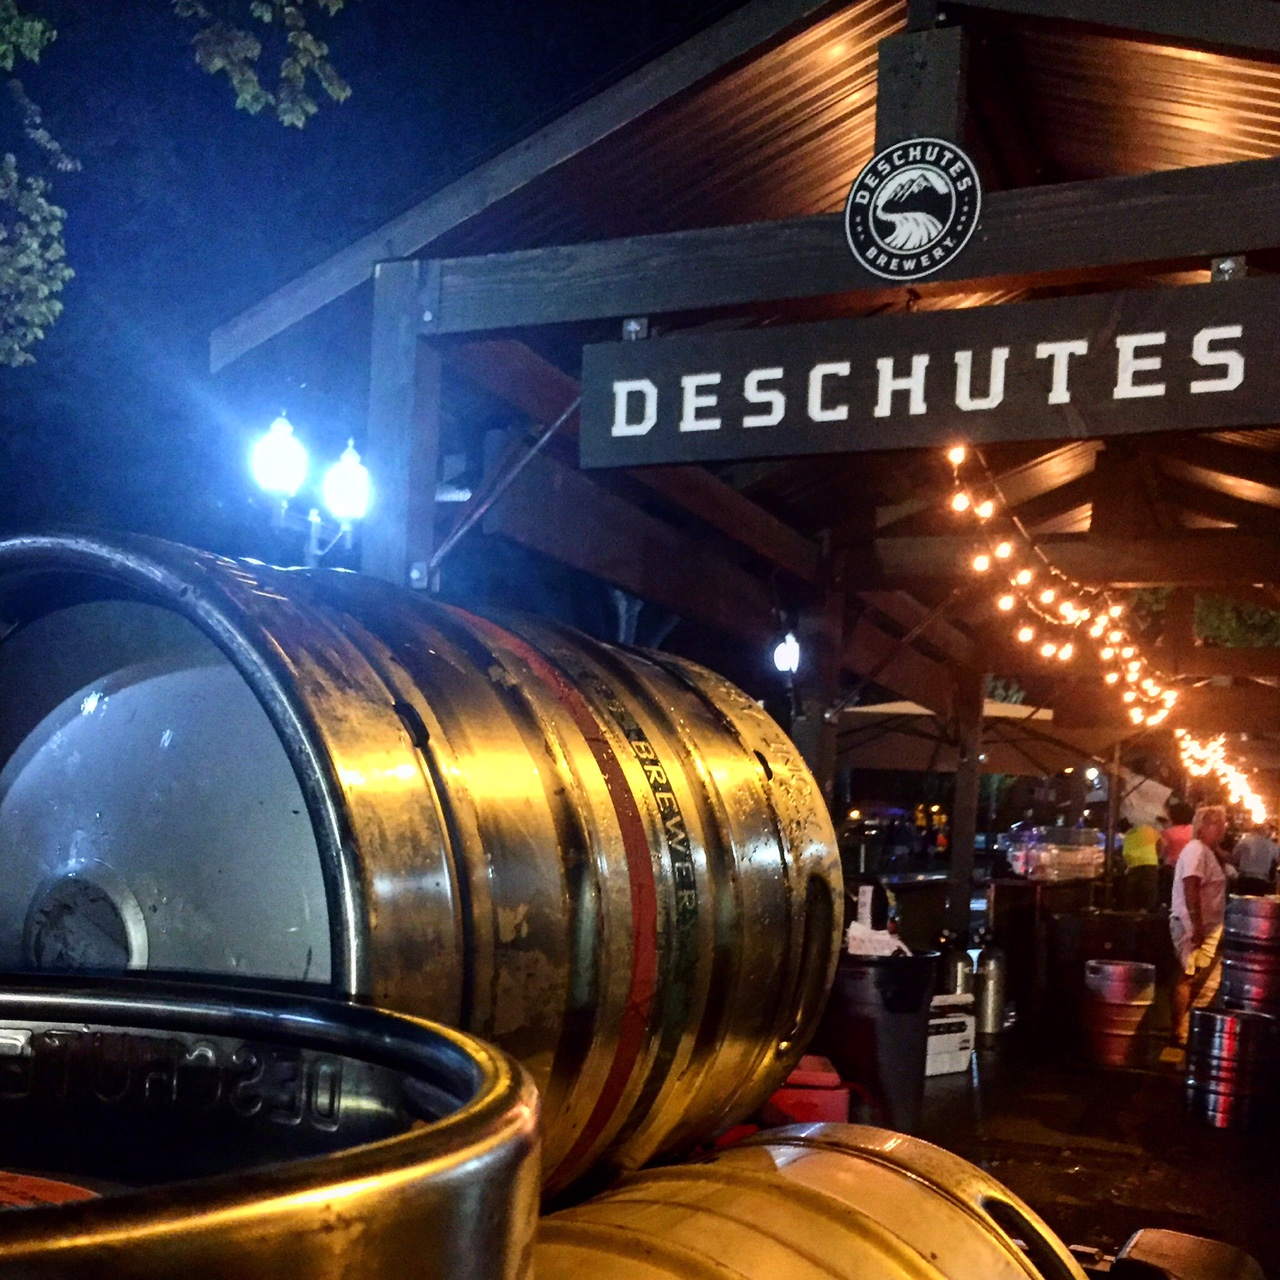 Deschutes Brewery Street Pub Returns to Roanoke